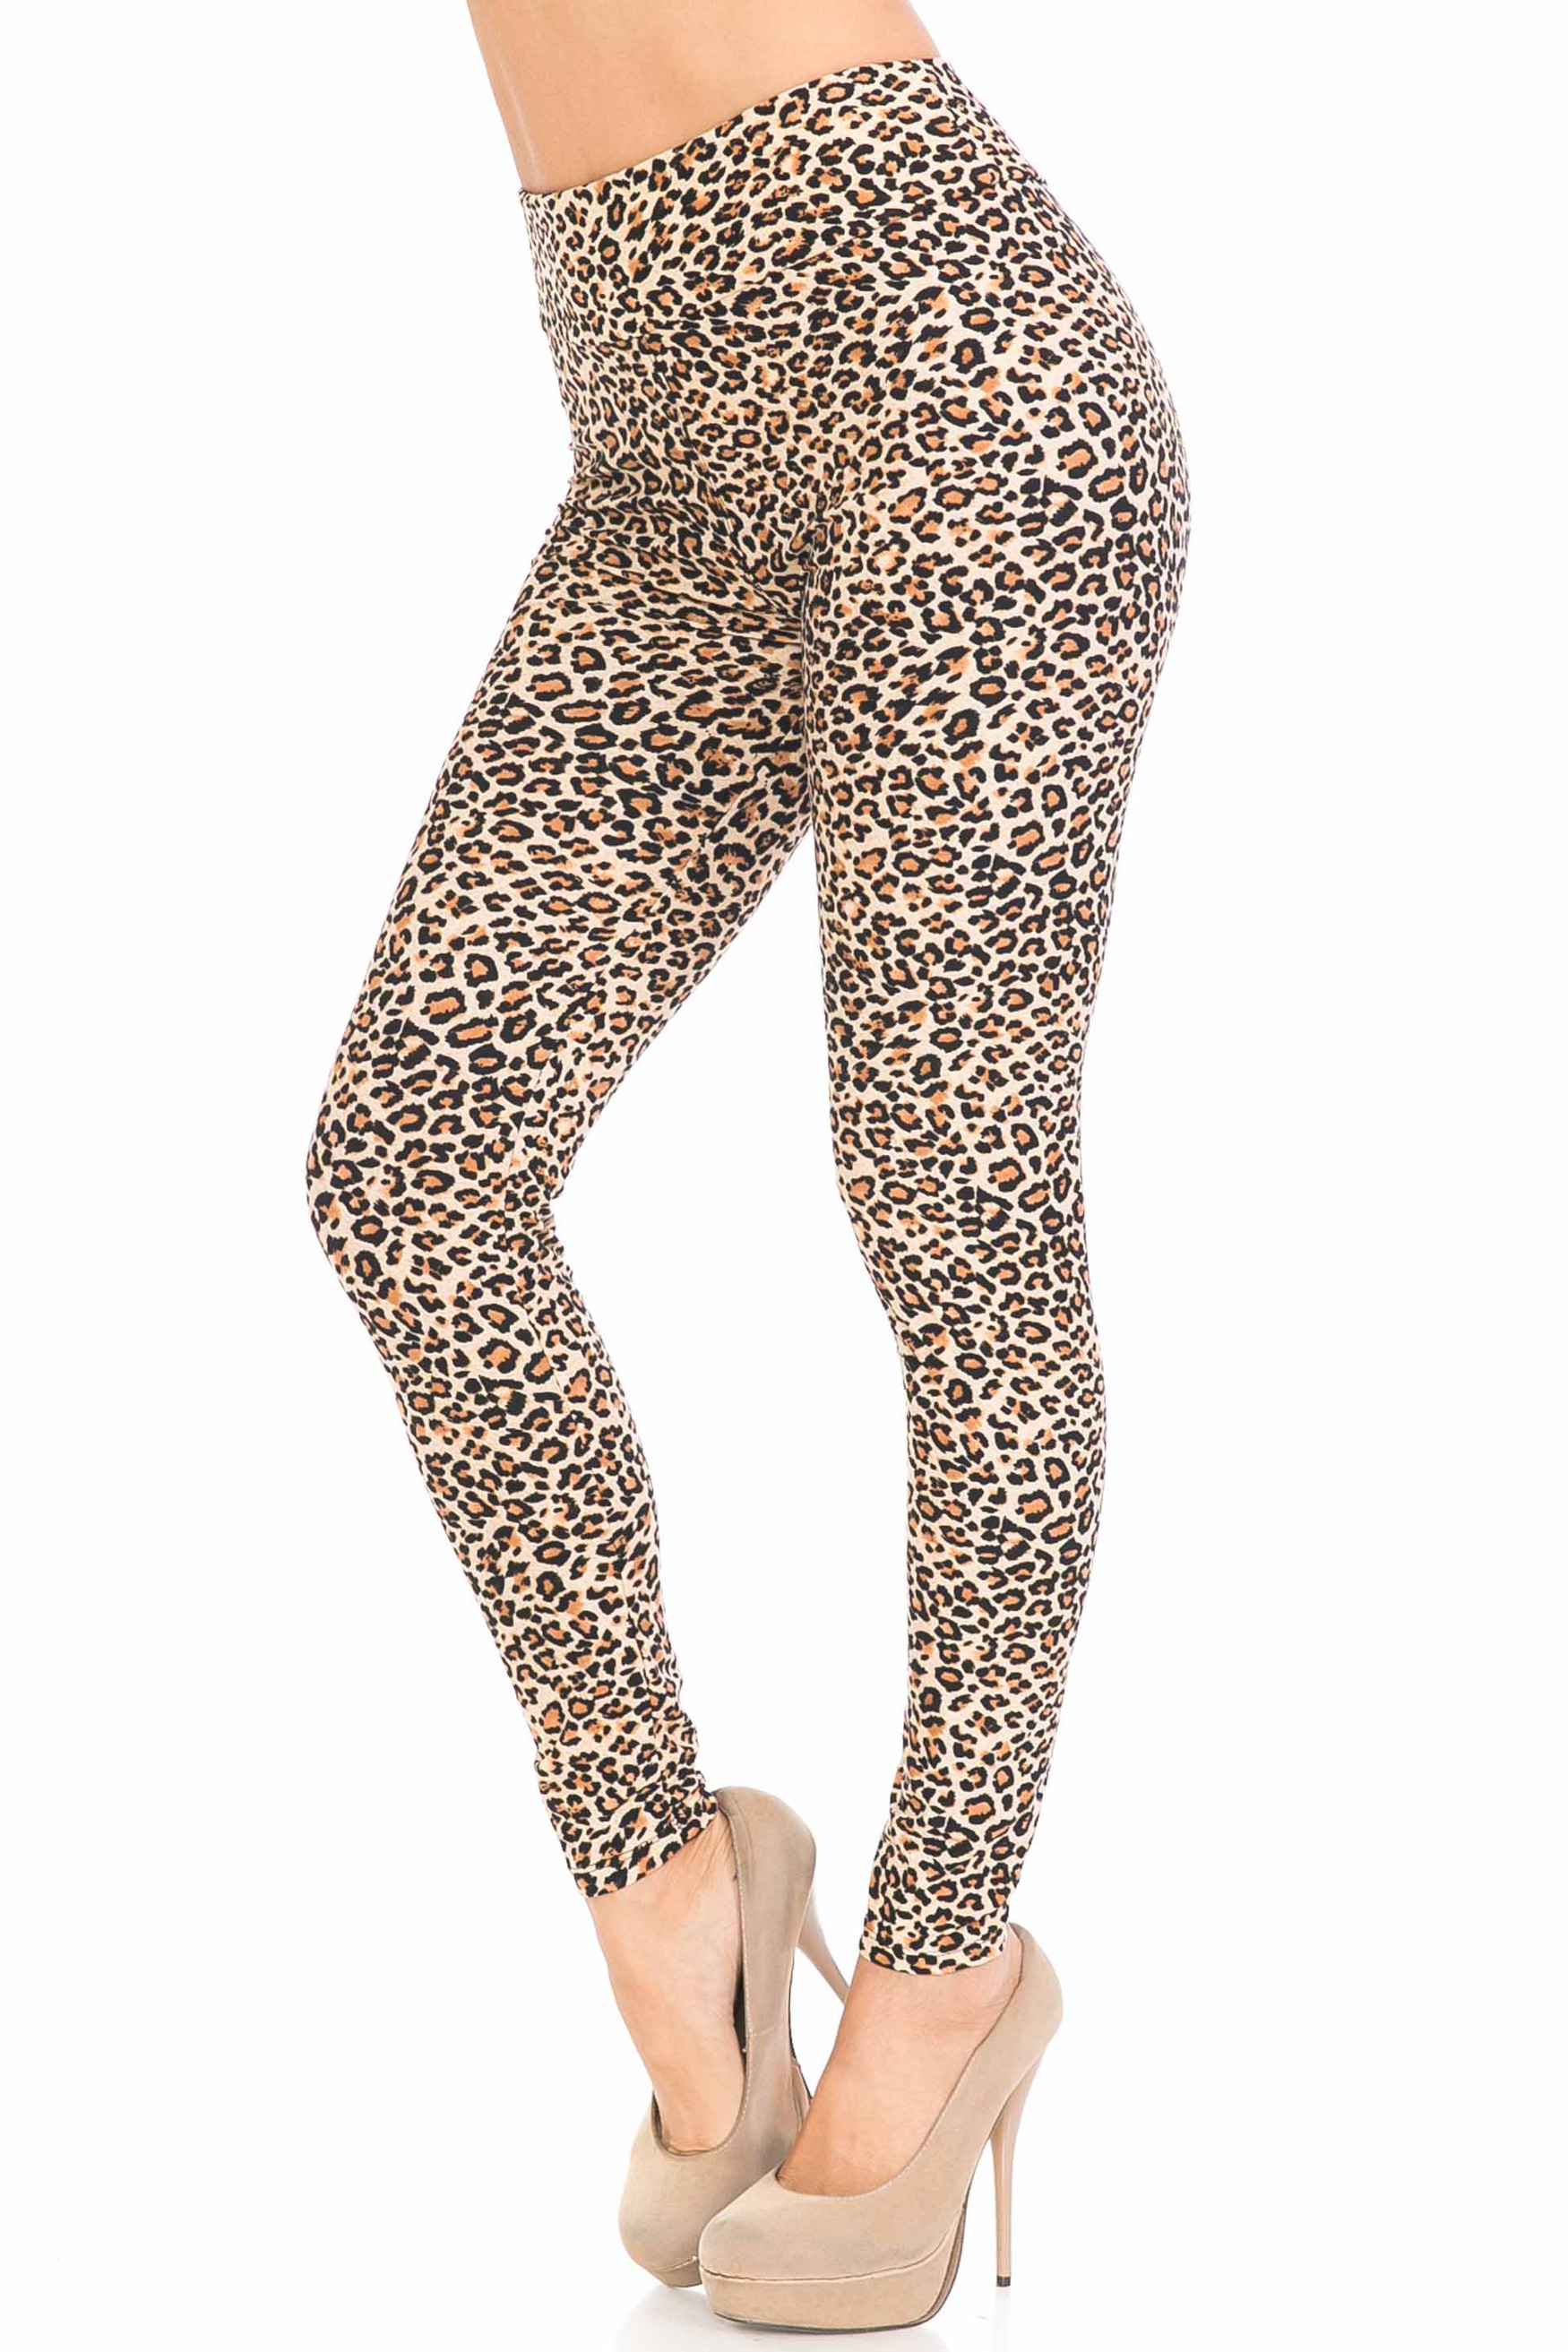 Buttery Soft Untamed Leopard Plus Size High Waisted Leggings